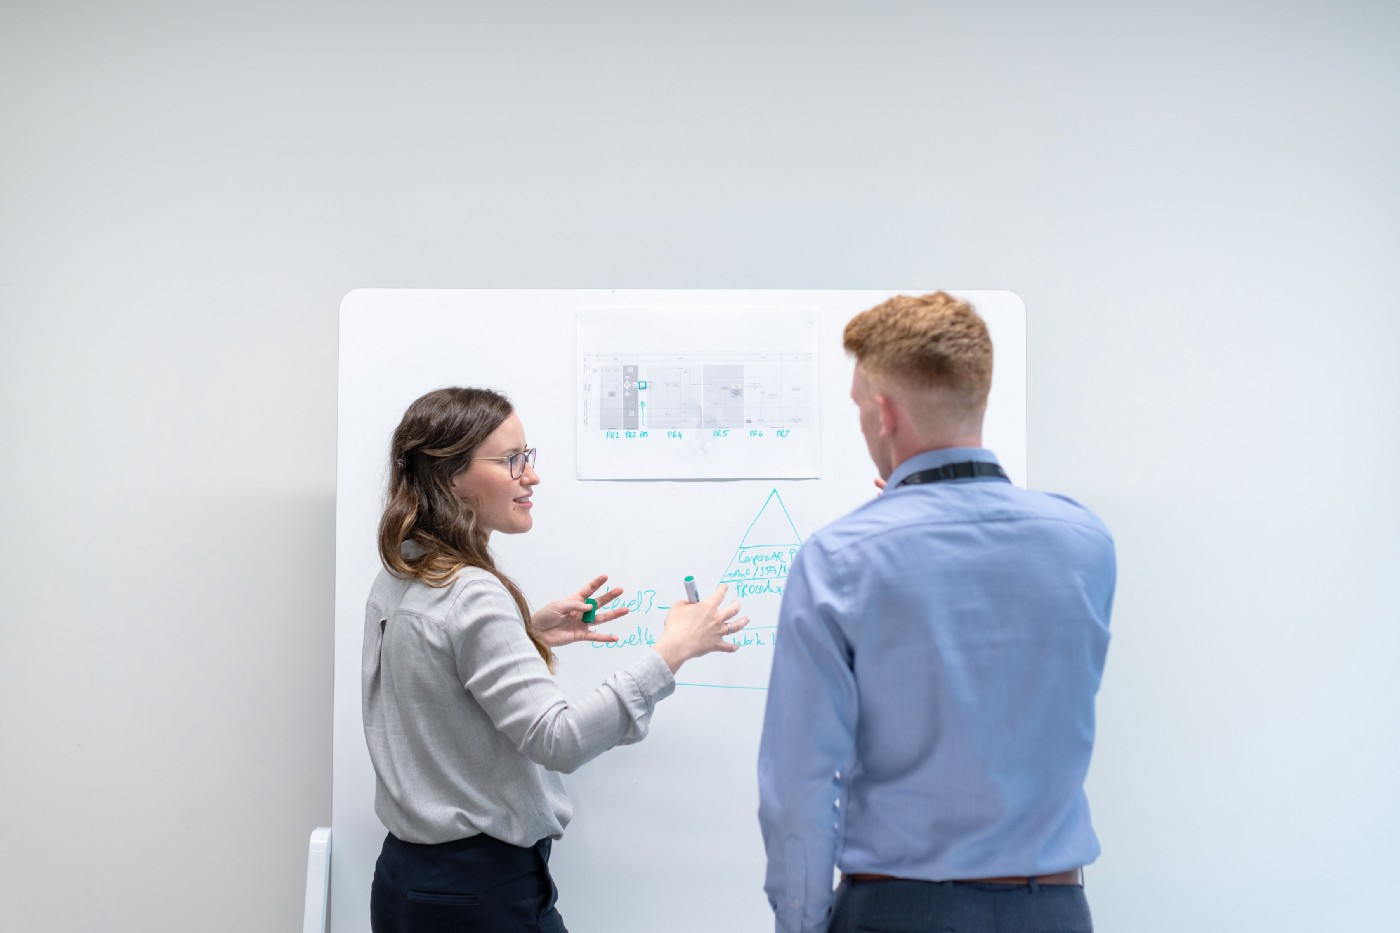 Electronics engineer discusses data in meeting with colleague